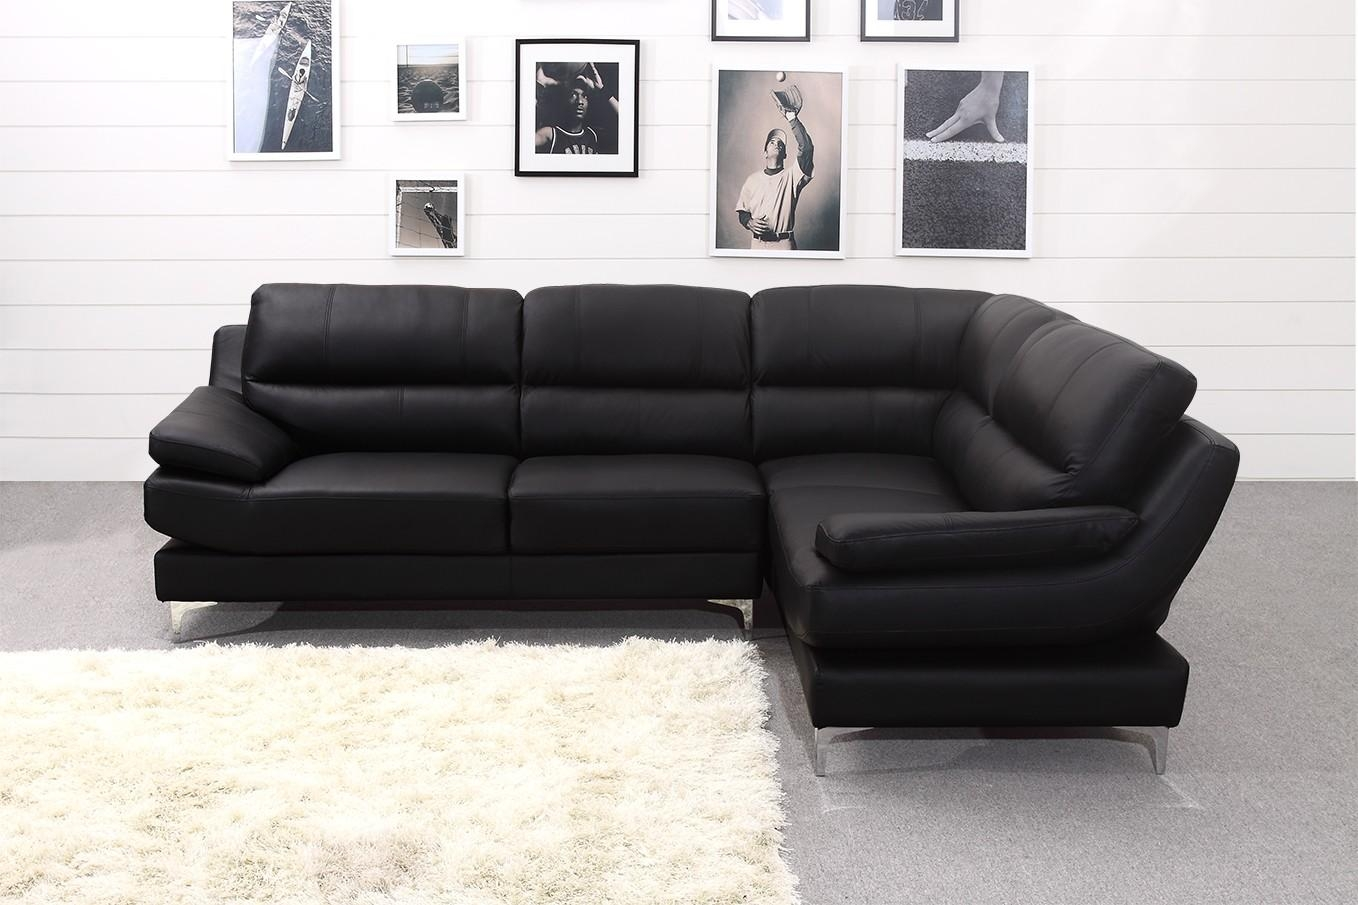 Leather Corner Sofa | Tehranmix Decoration Intended For Cheap Corner Sofa (Image 14 of 20)